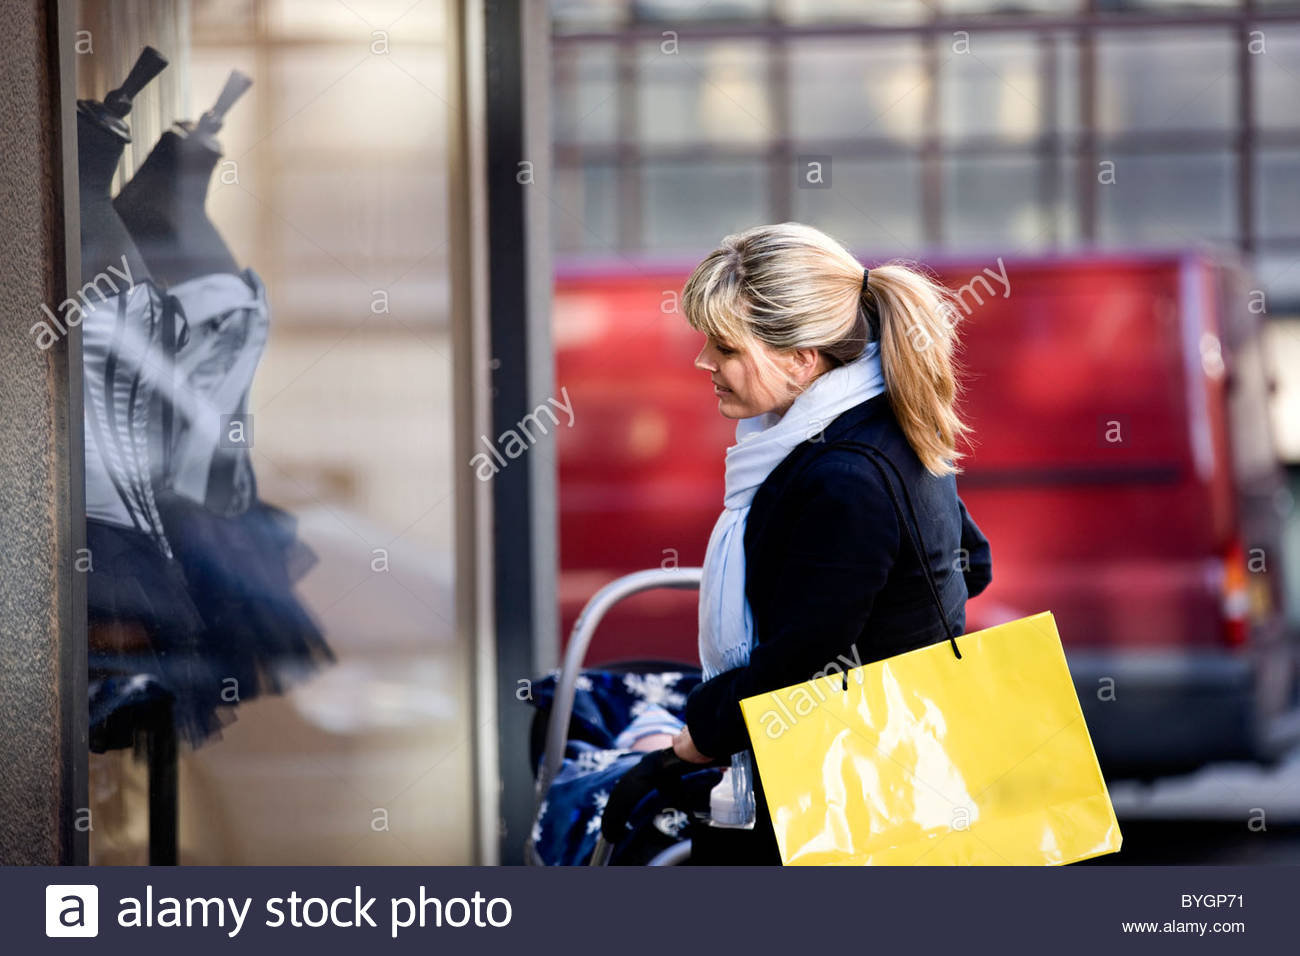 A mother pushing a stroller, looking in a shop window - Stock Image